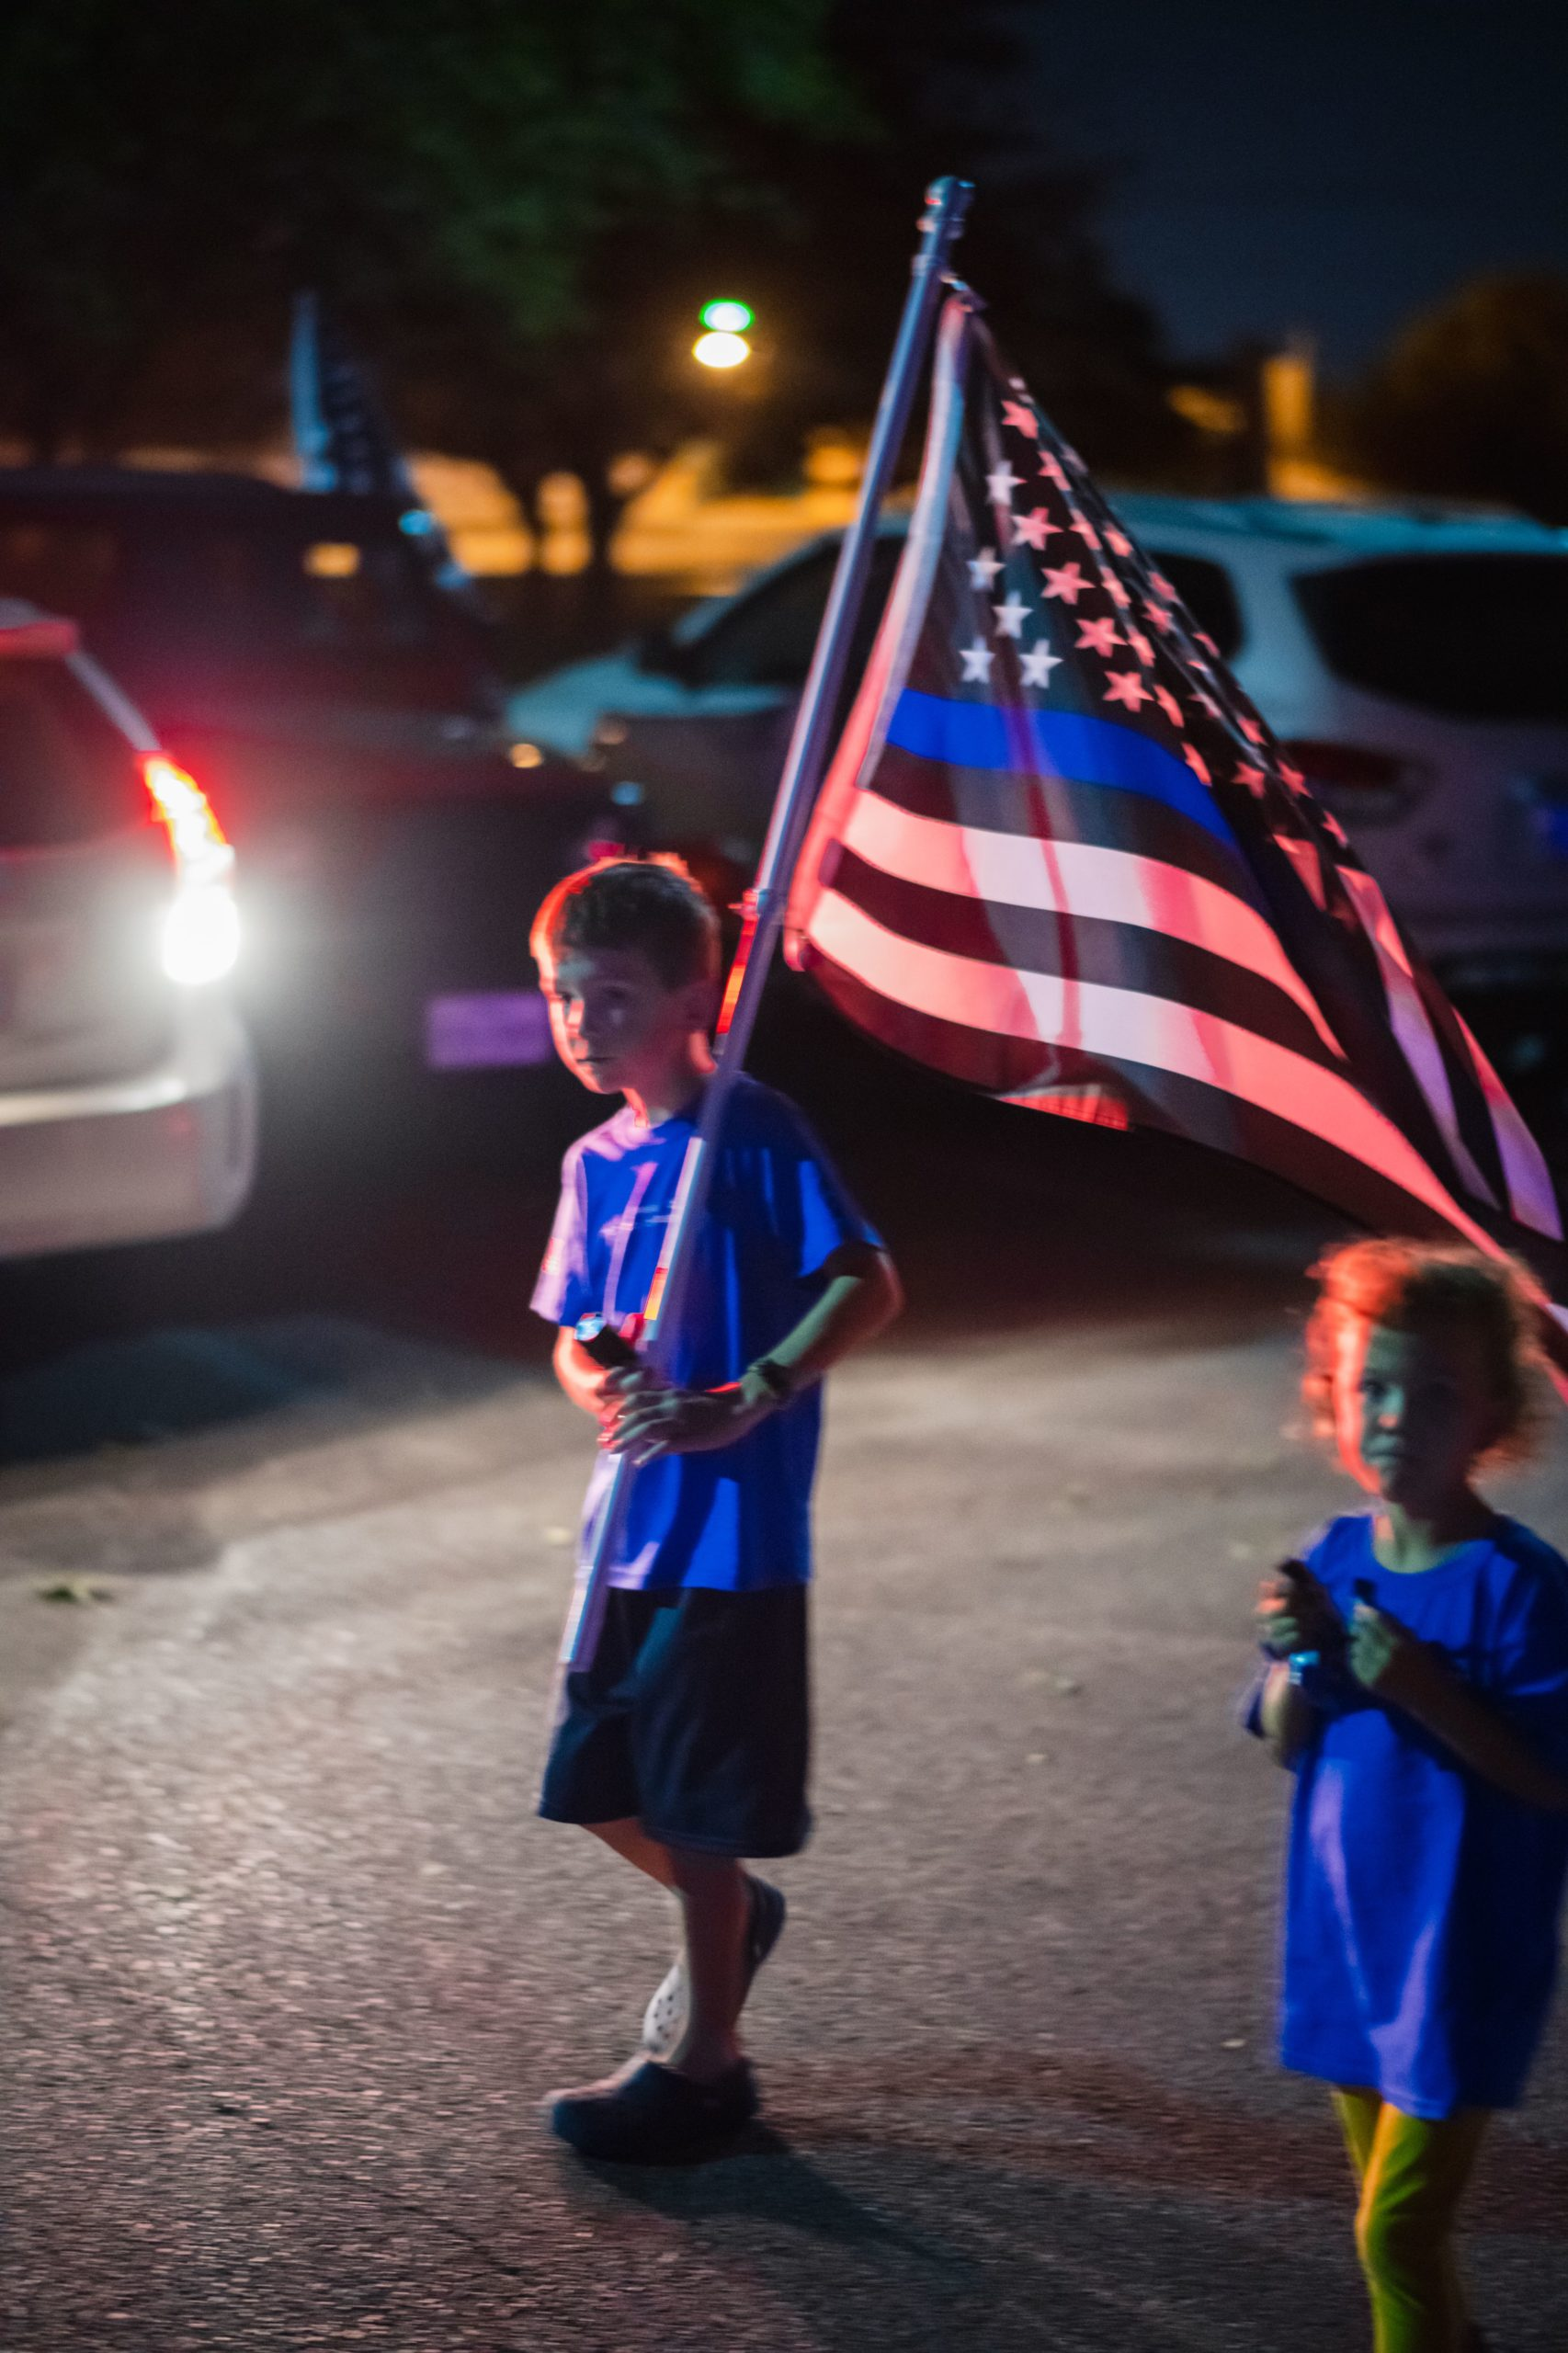 A young boy holds a thin blue line flag at the United by the Blue Line Vigil organized by the El Paso Police Wives and Family Support Organization at Album Park in El Paso, Texas on November 7, 2020. (Photo by JUSTIN HAMEL/AFP via Getty Images)